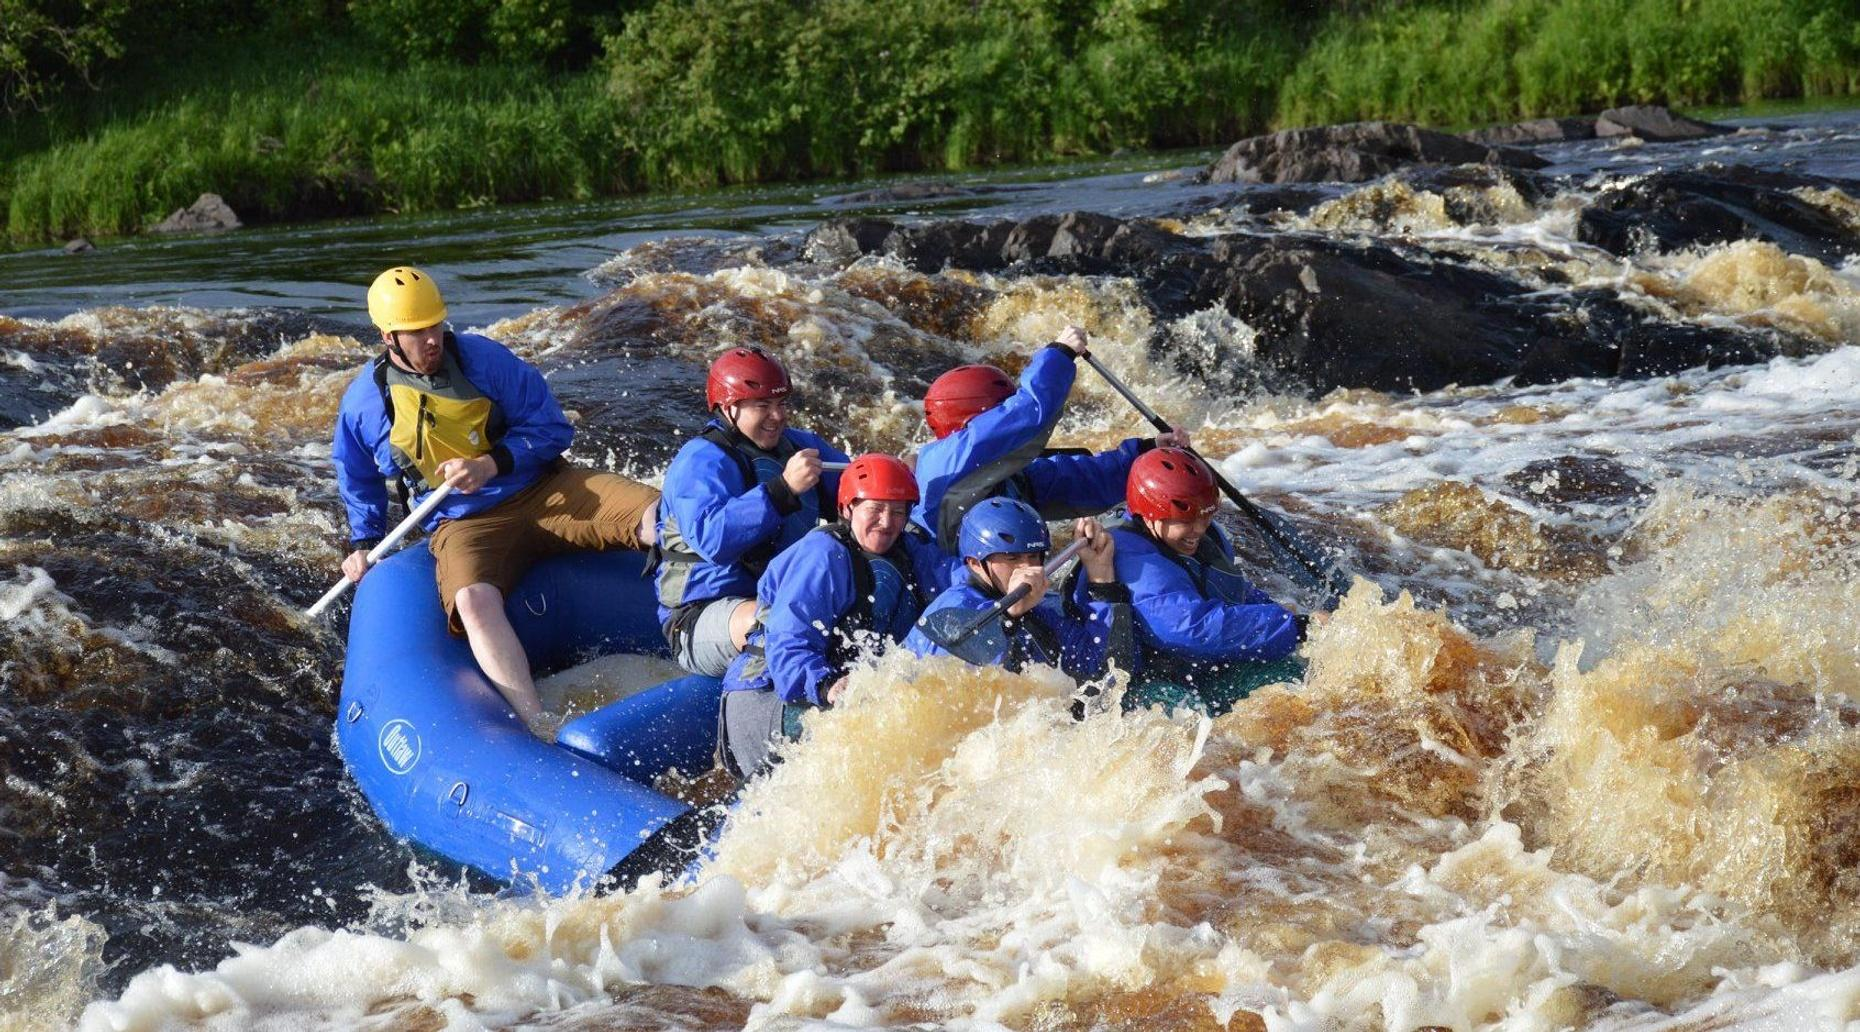 St. Louis River Whitewater Rafting